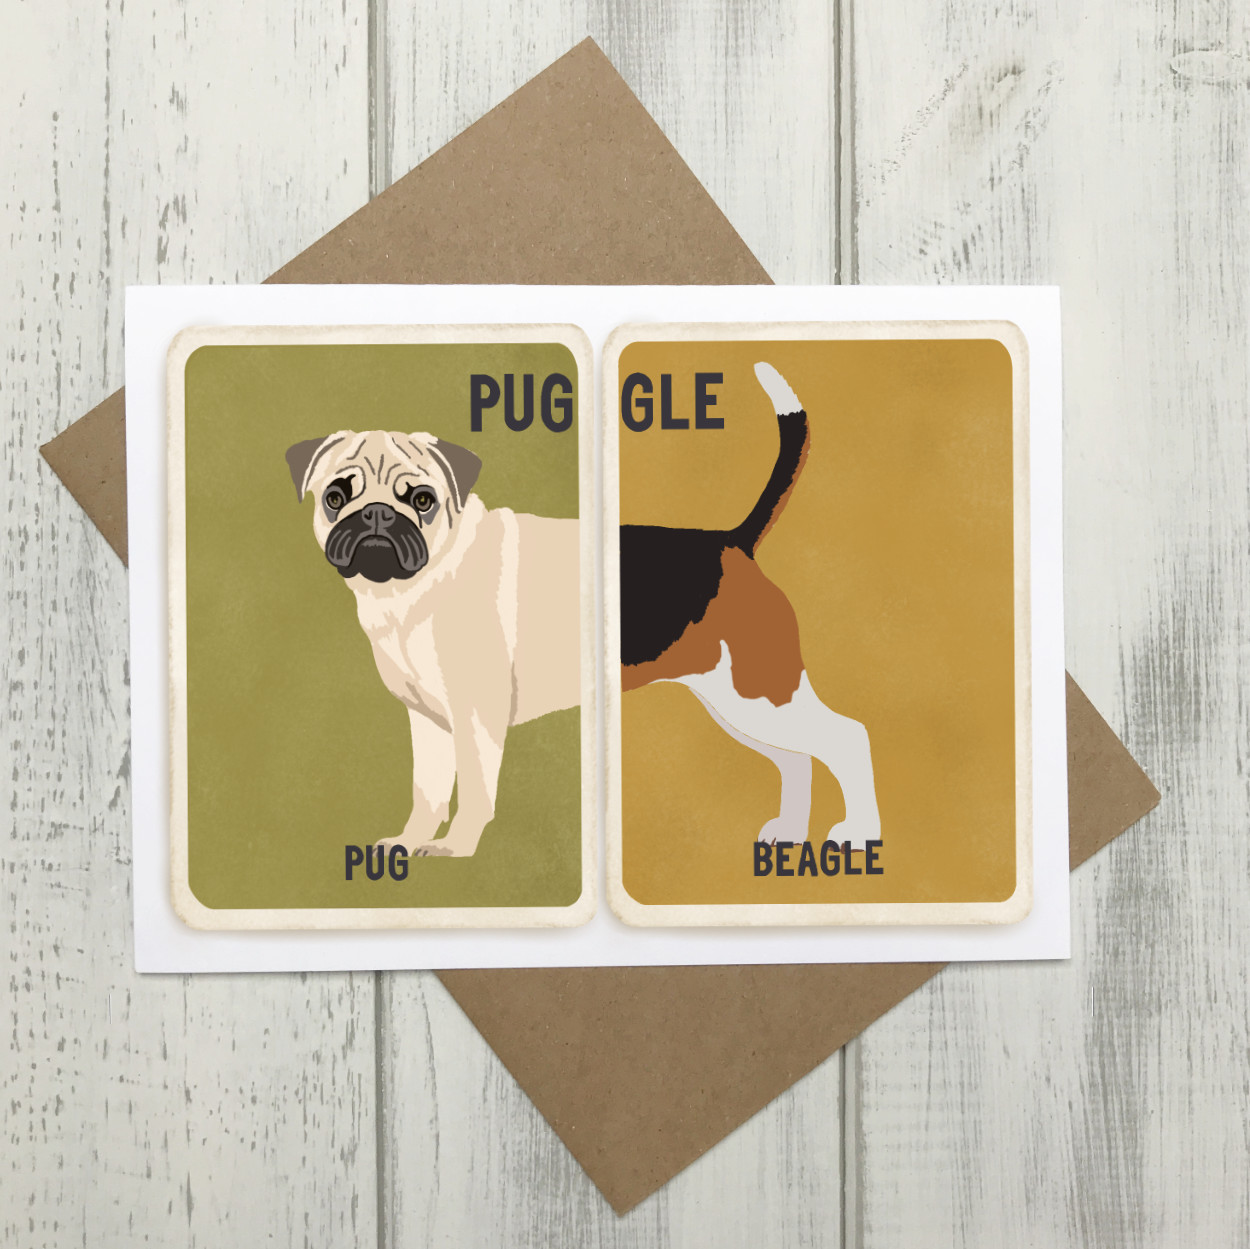 Puggle Cross Breed Card | Pug Beagle Cross